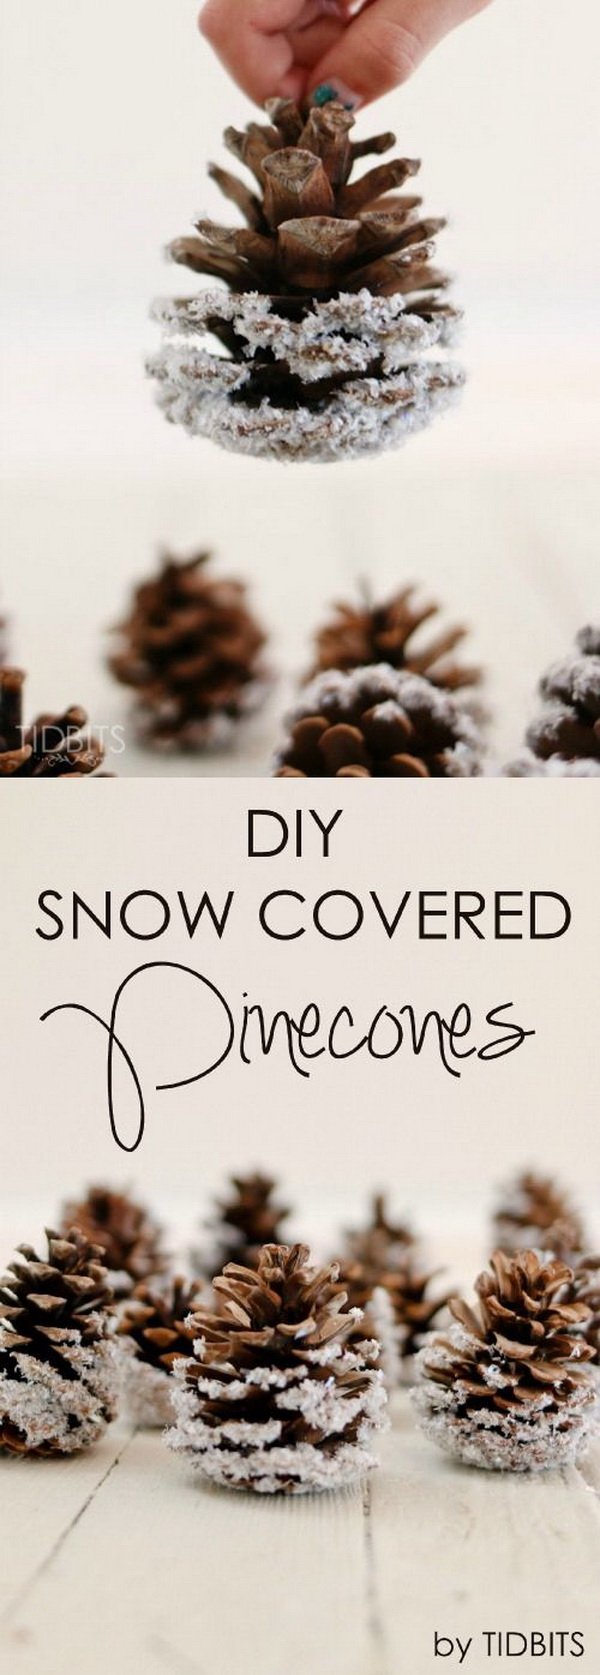 DIY Snow Covered Pinecones. These snow frosted pinecones are easy and inexpensive to DIY and will surely add elegant rustic charm to your Christmas decor!